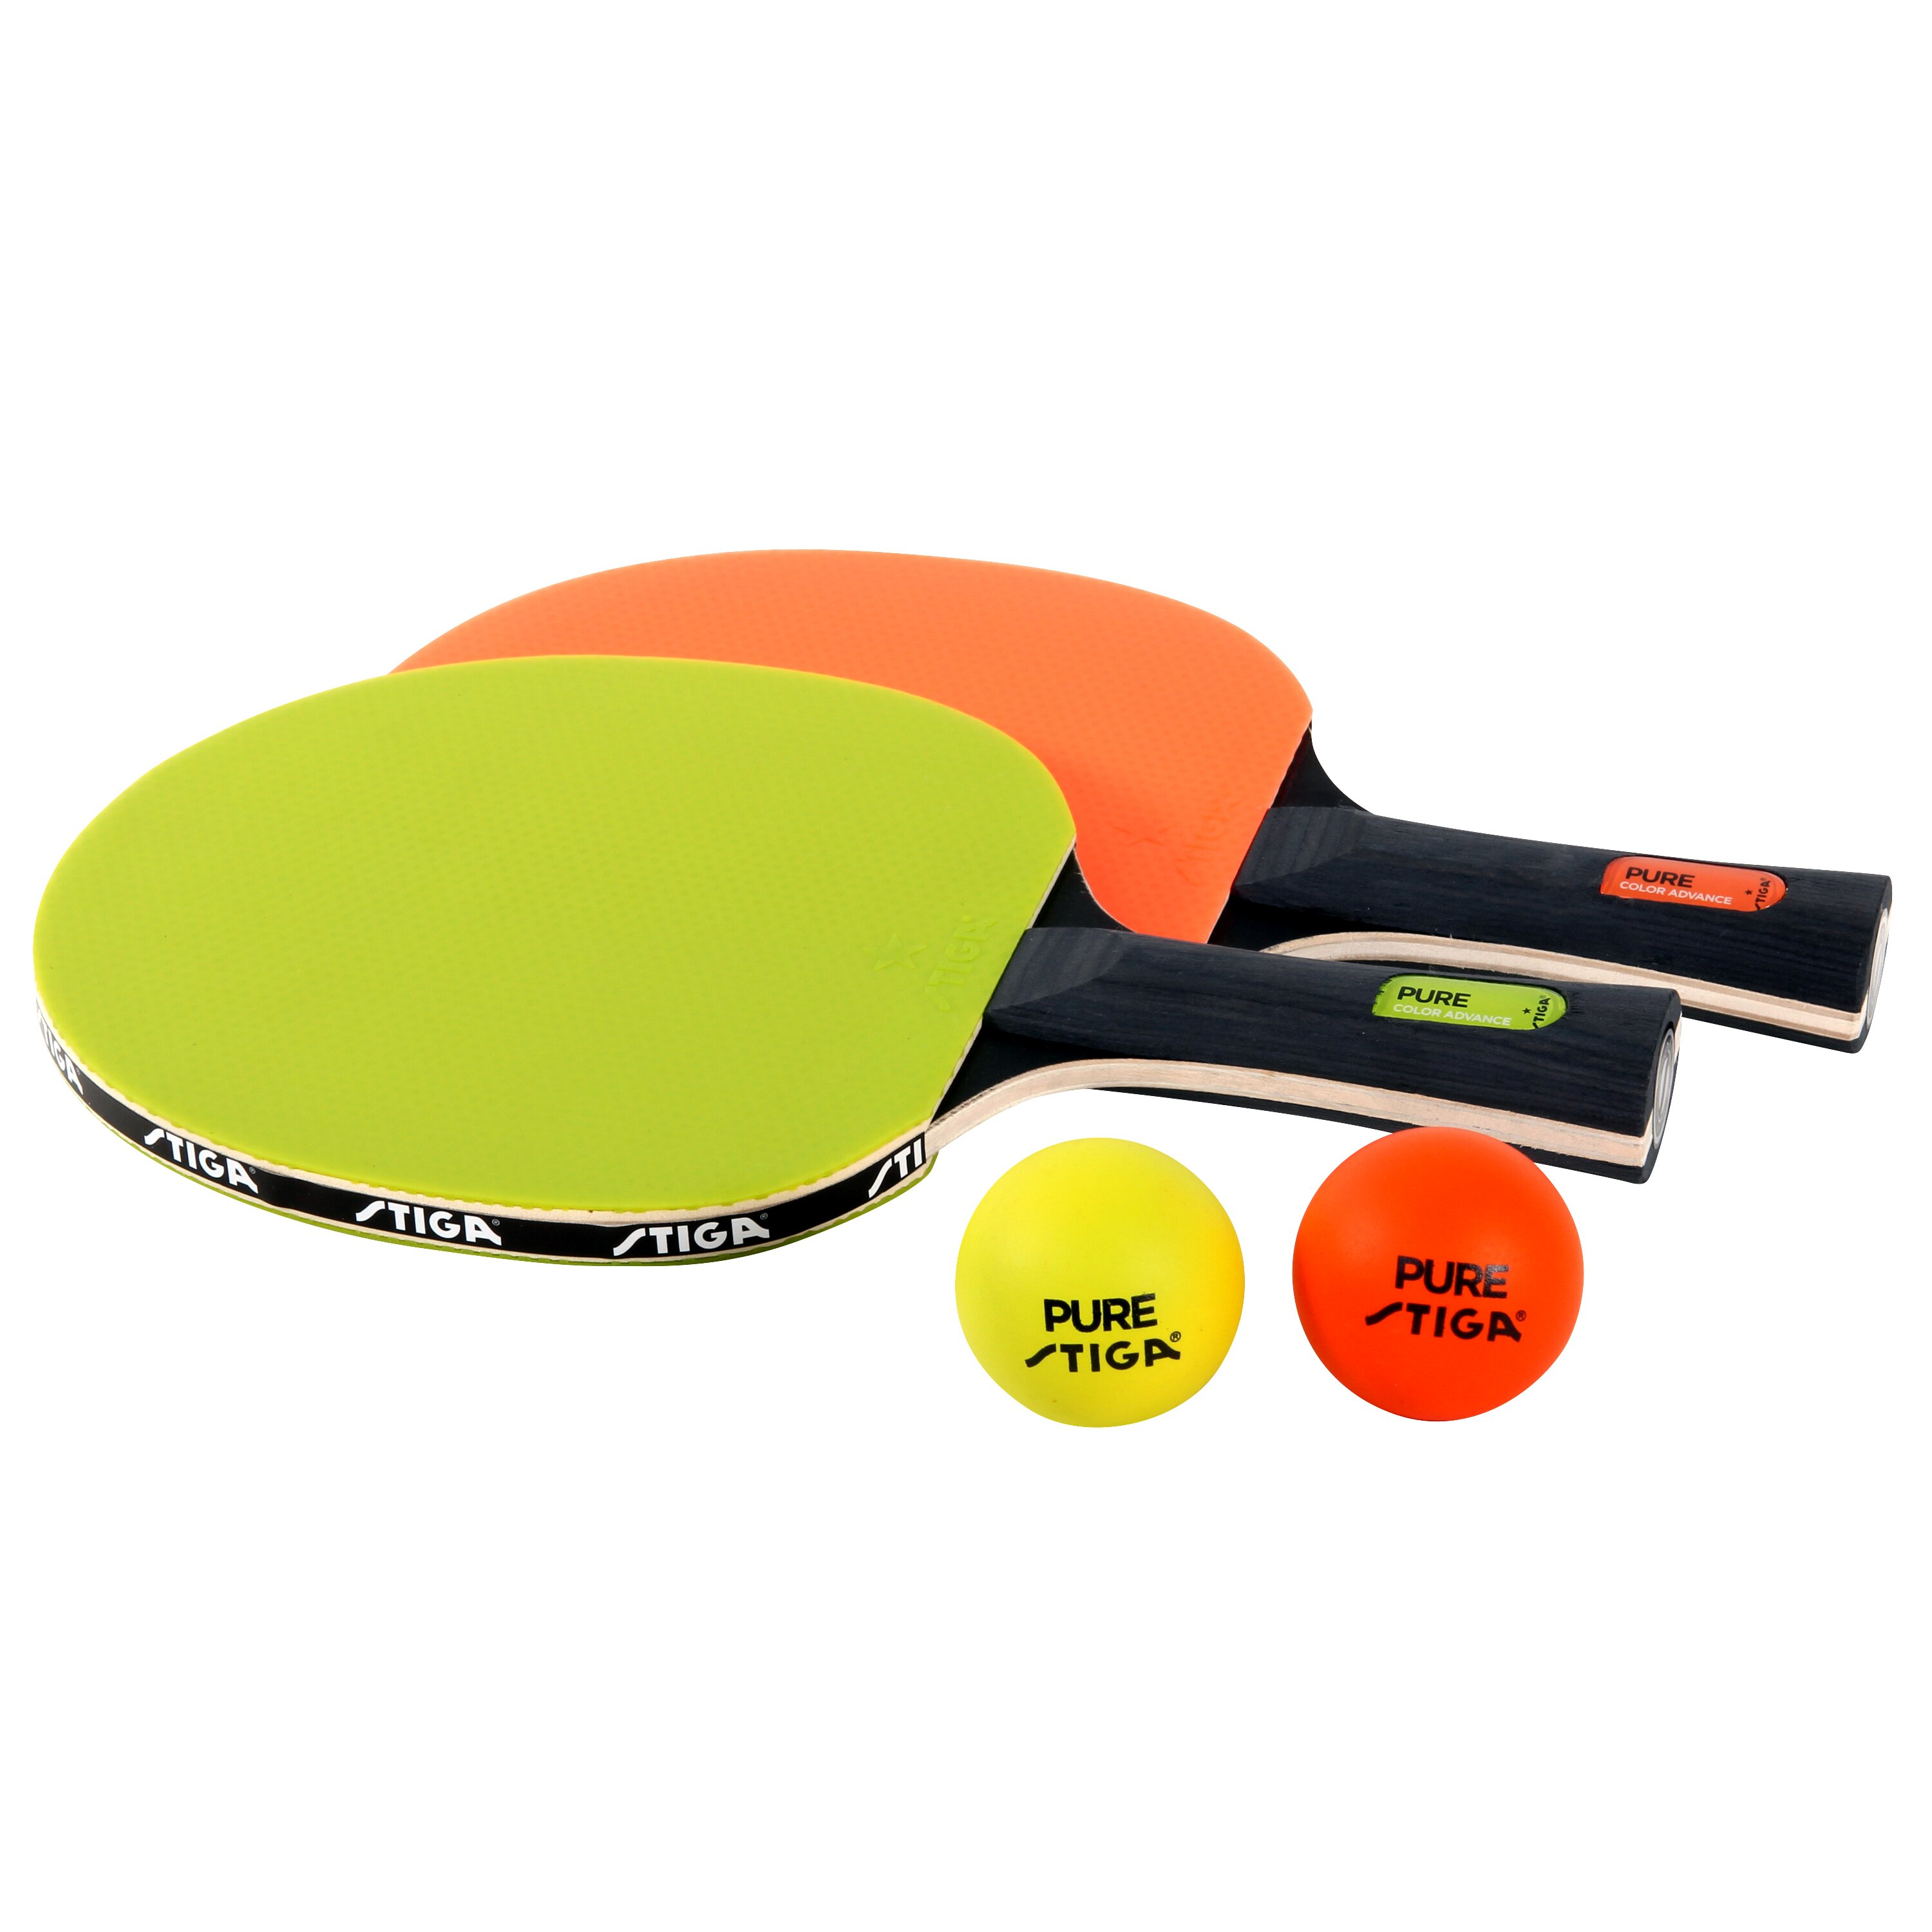 Escalade Sports Stiga Pure Color Advance Table Tennis